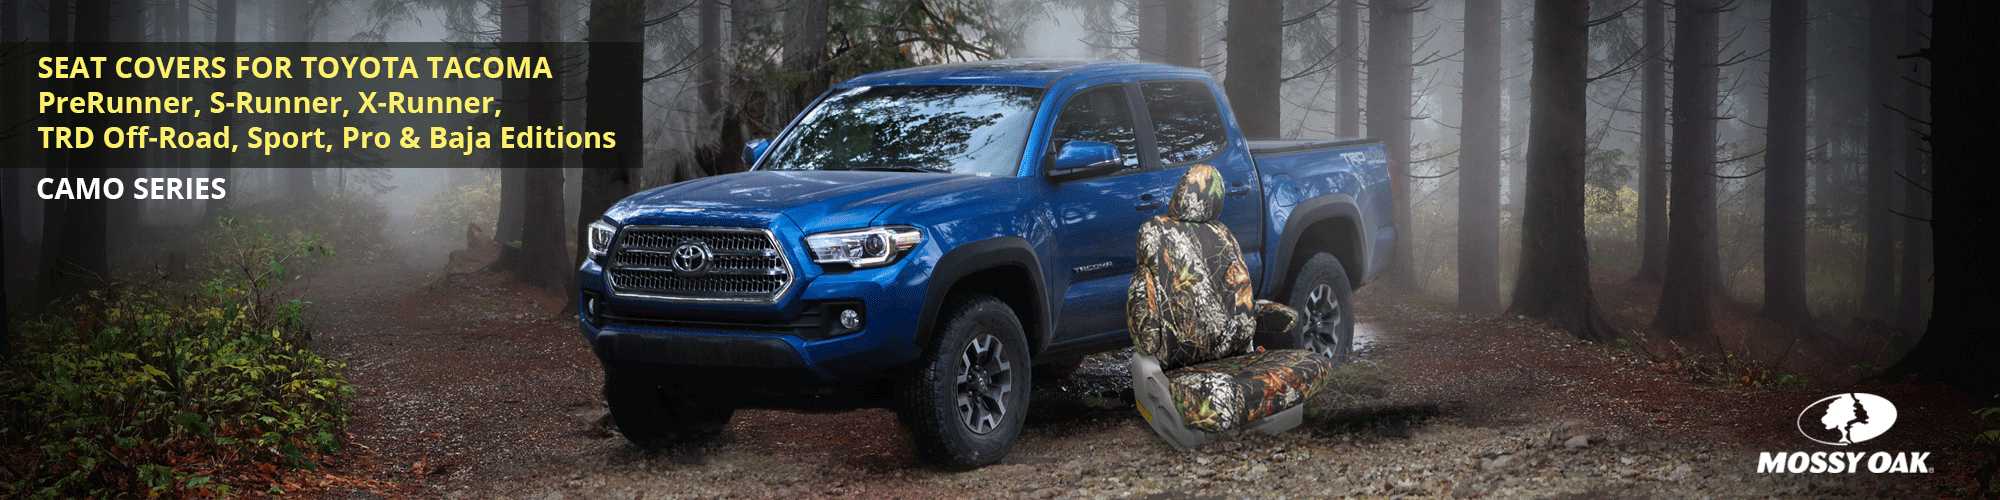 Toyota Tacoma Custom Seat Covers | Toyota Pickup Truck Seat Covers